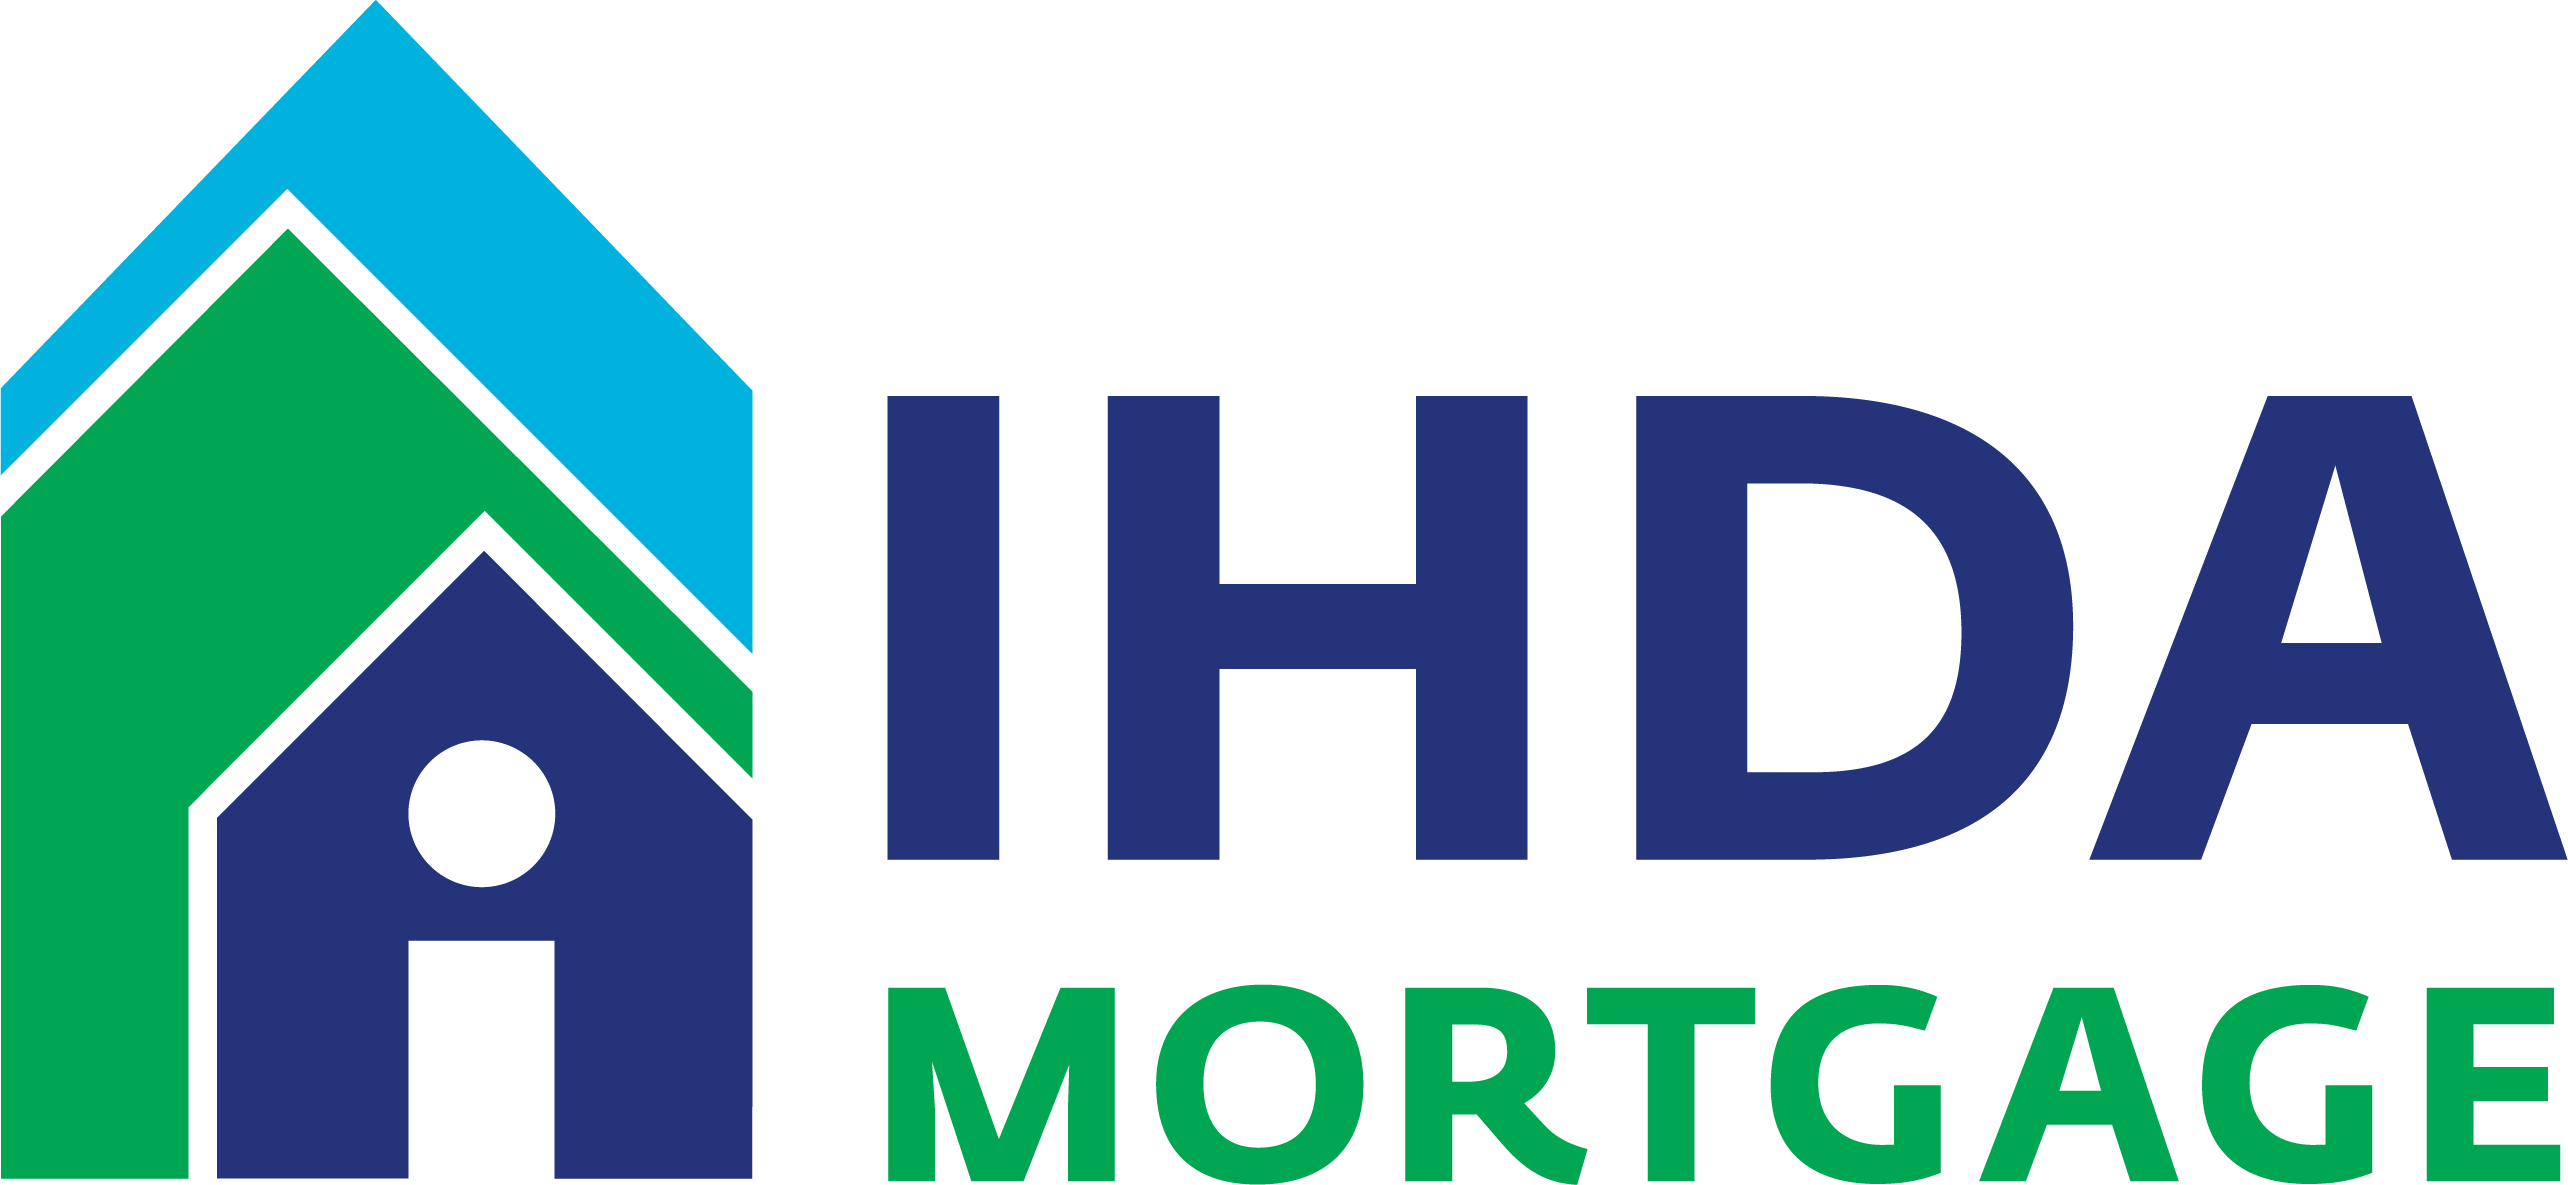 IHDA Mortgage Logo